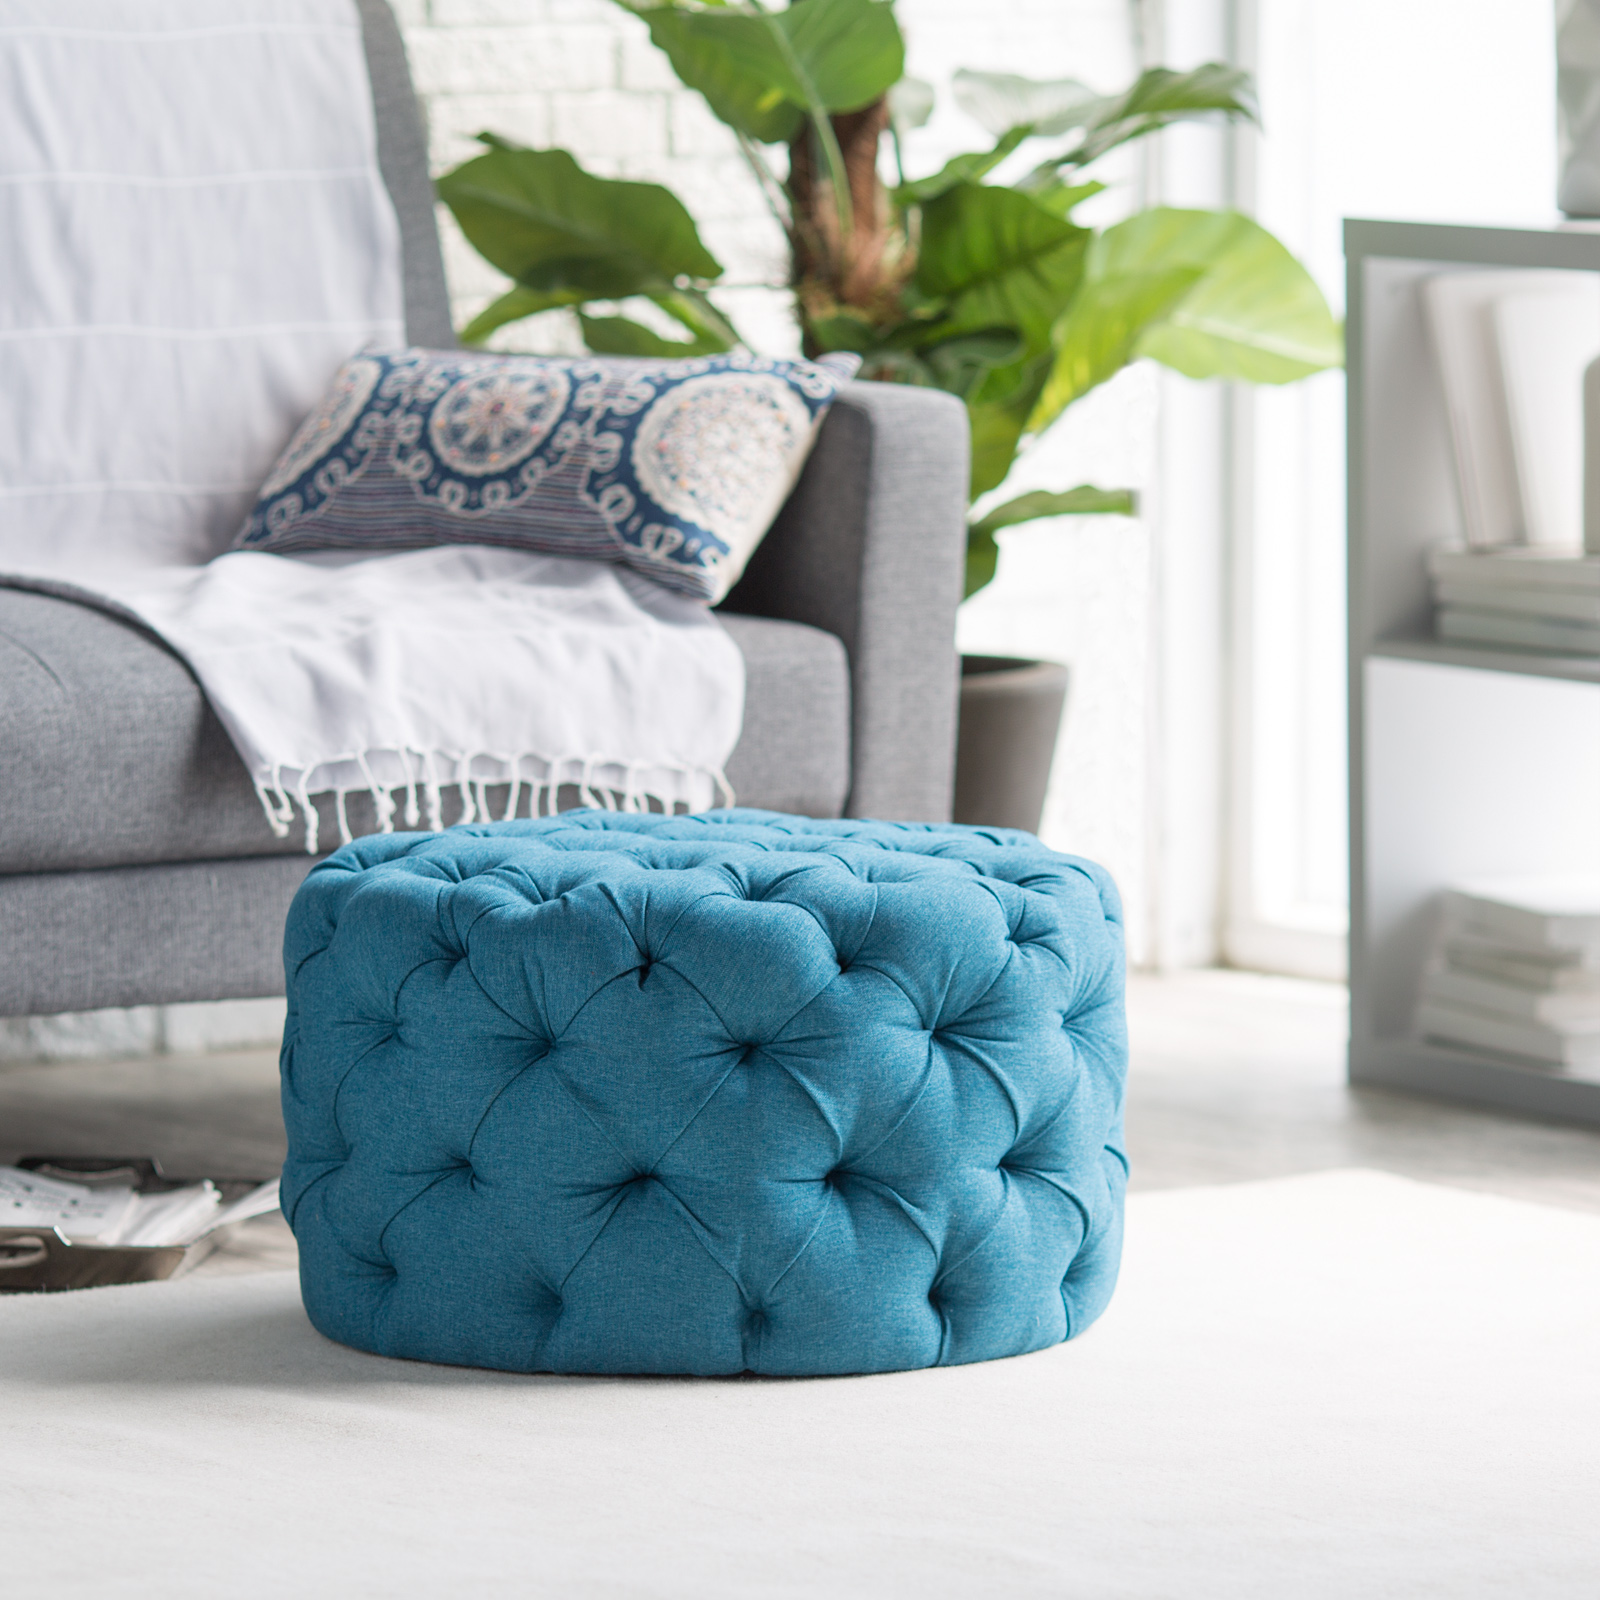 Belham Living Allover Round Tufted Ottoman Teal